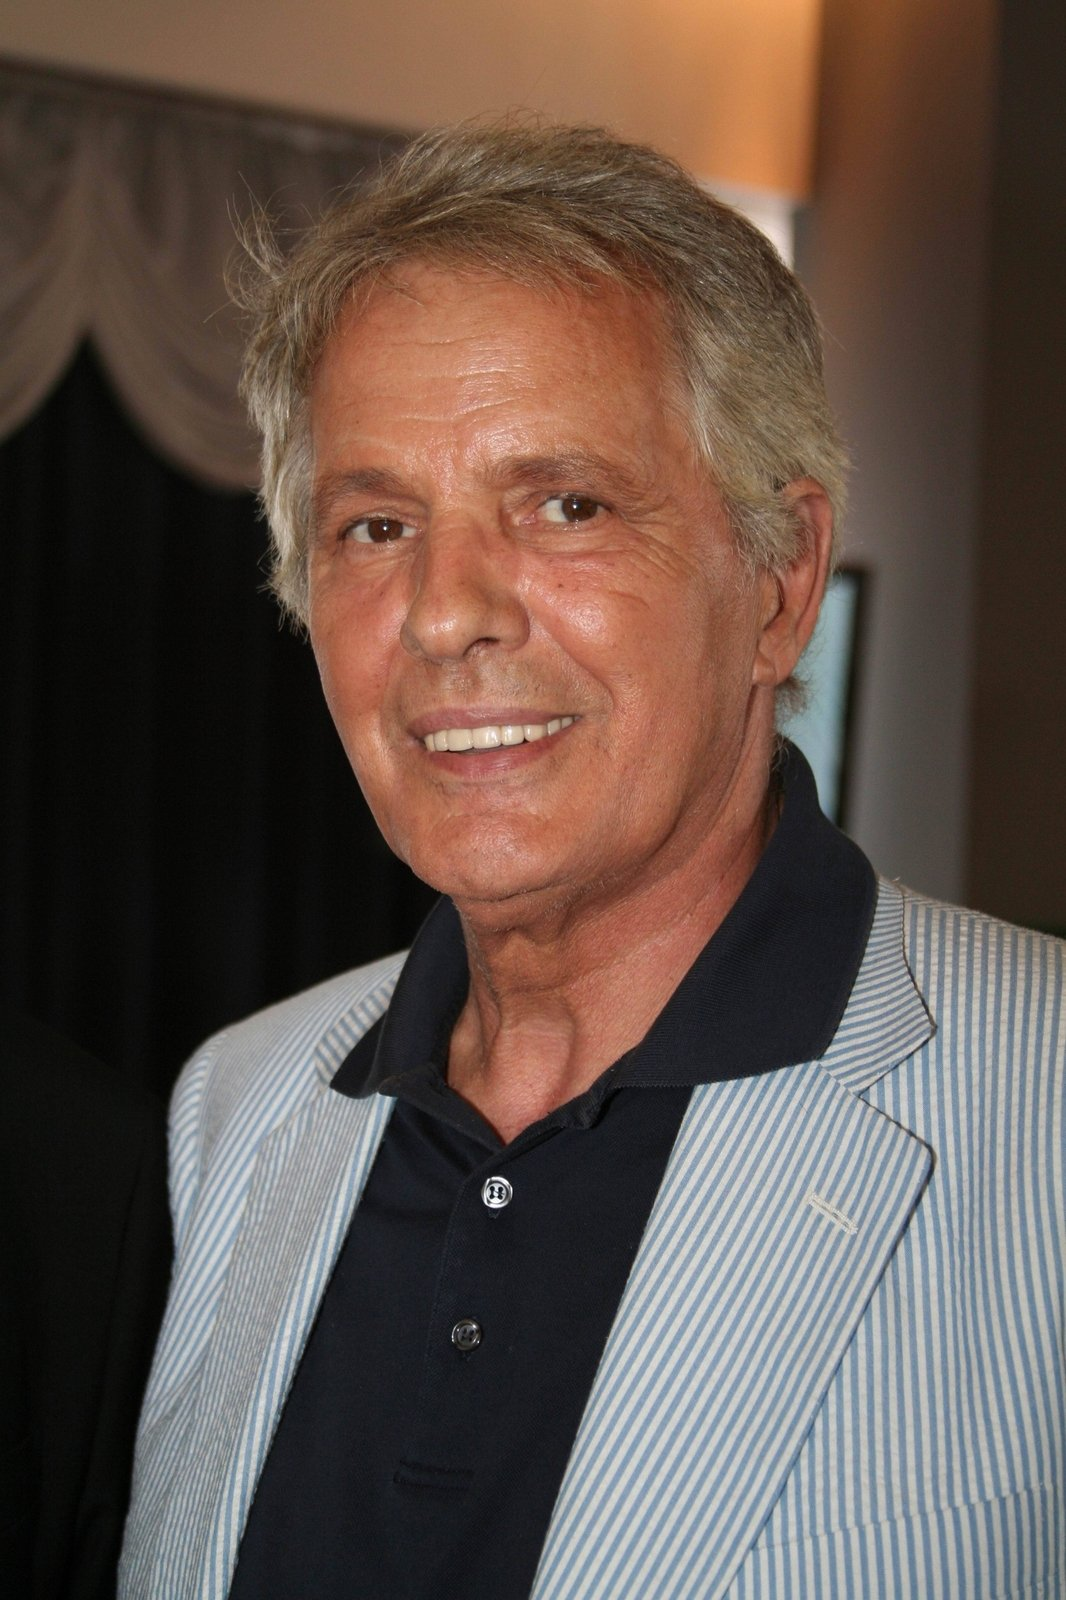 Image: 0173477250, License: Rights managed, Restrictions: No publication in Italy, September 9, 2008 - Venice, Italy : Actor Giuliano Gemma, famous for his career in the Italian western movies, has died in Rome, Italy, on September 30, 2013  in a car incident. It was 75., Place: Italy, Model Release: No or not aplicable, Credit line: Profimedia.cz, Polaris